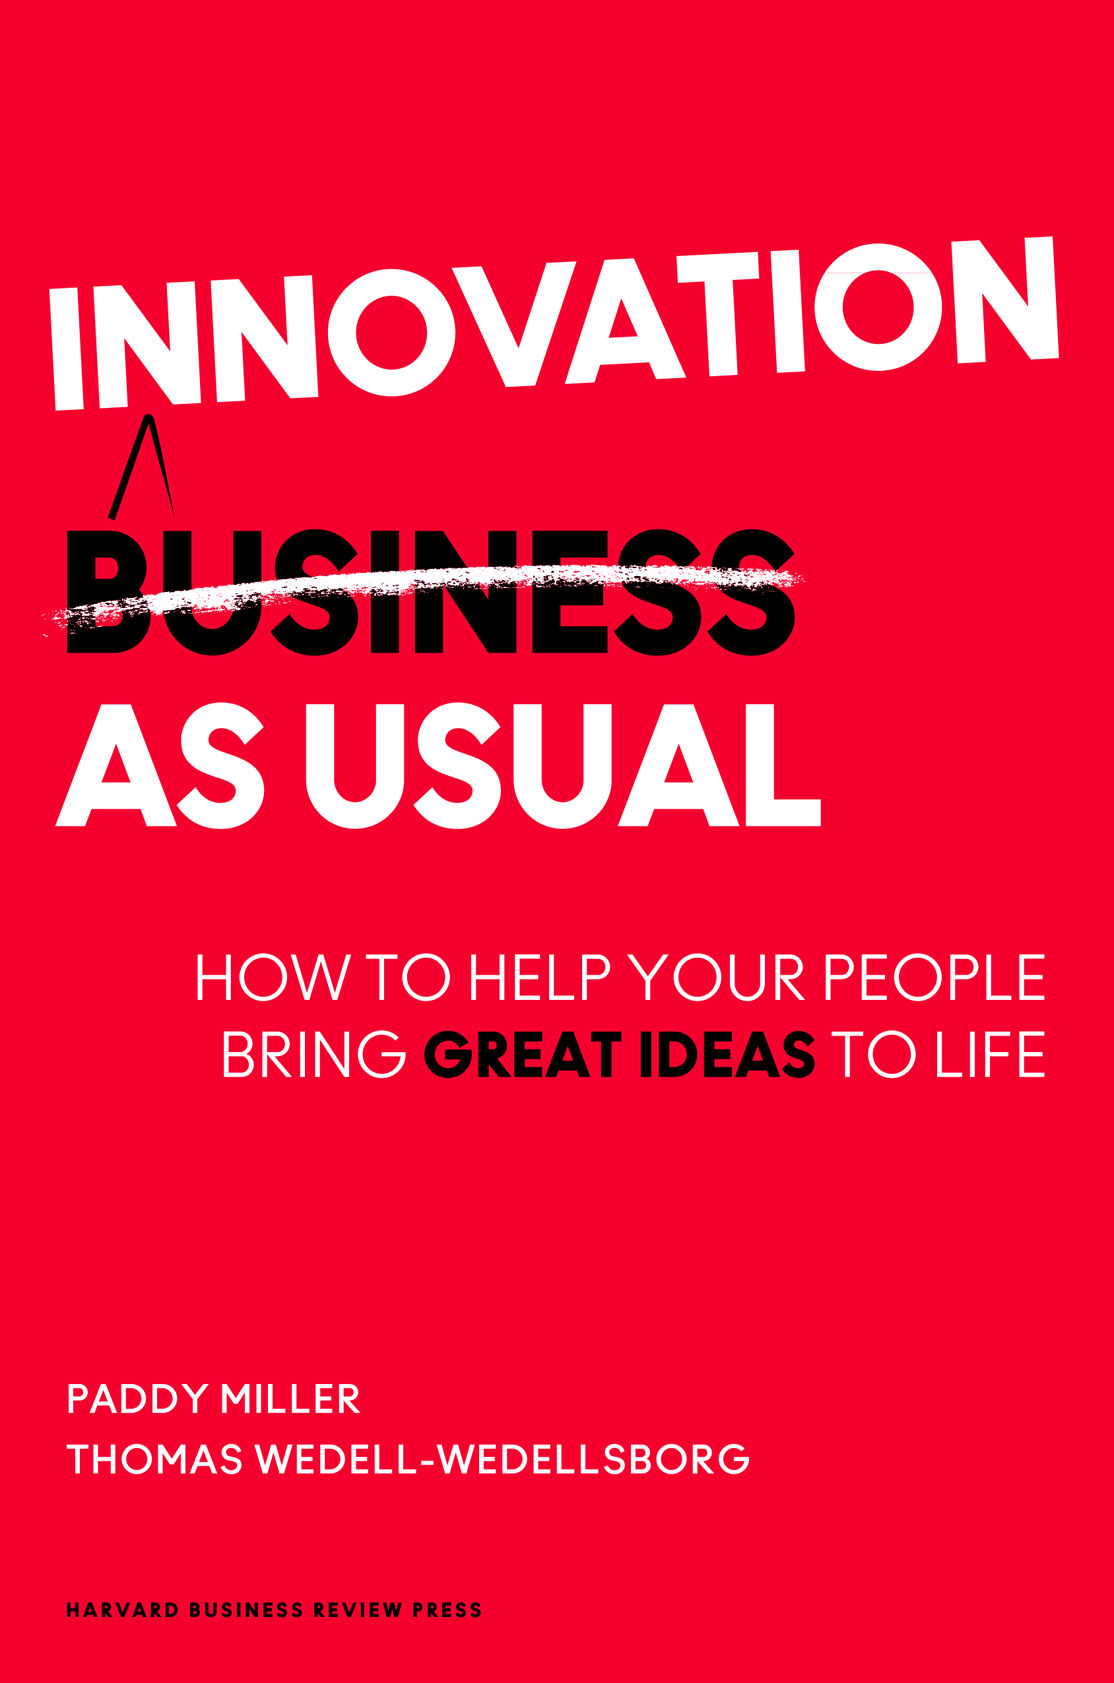 innovation as usual book cover